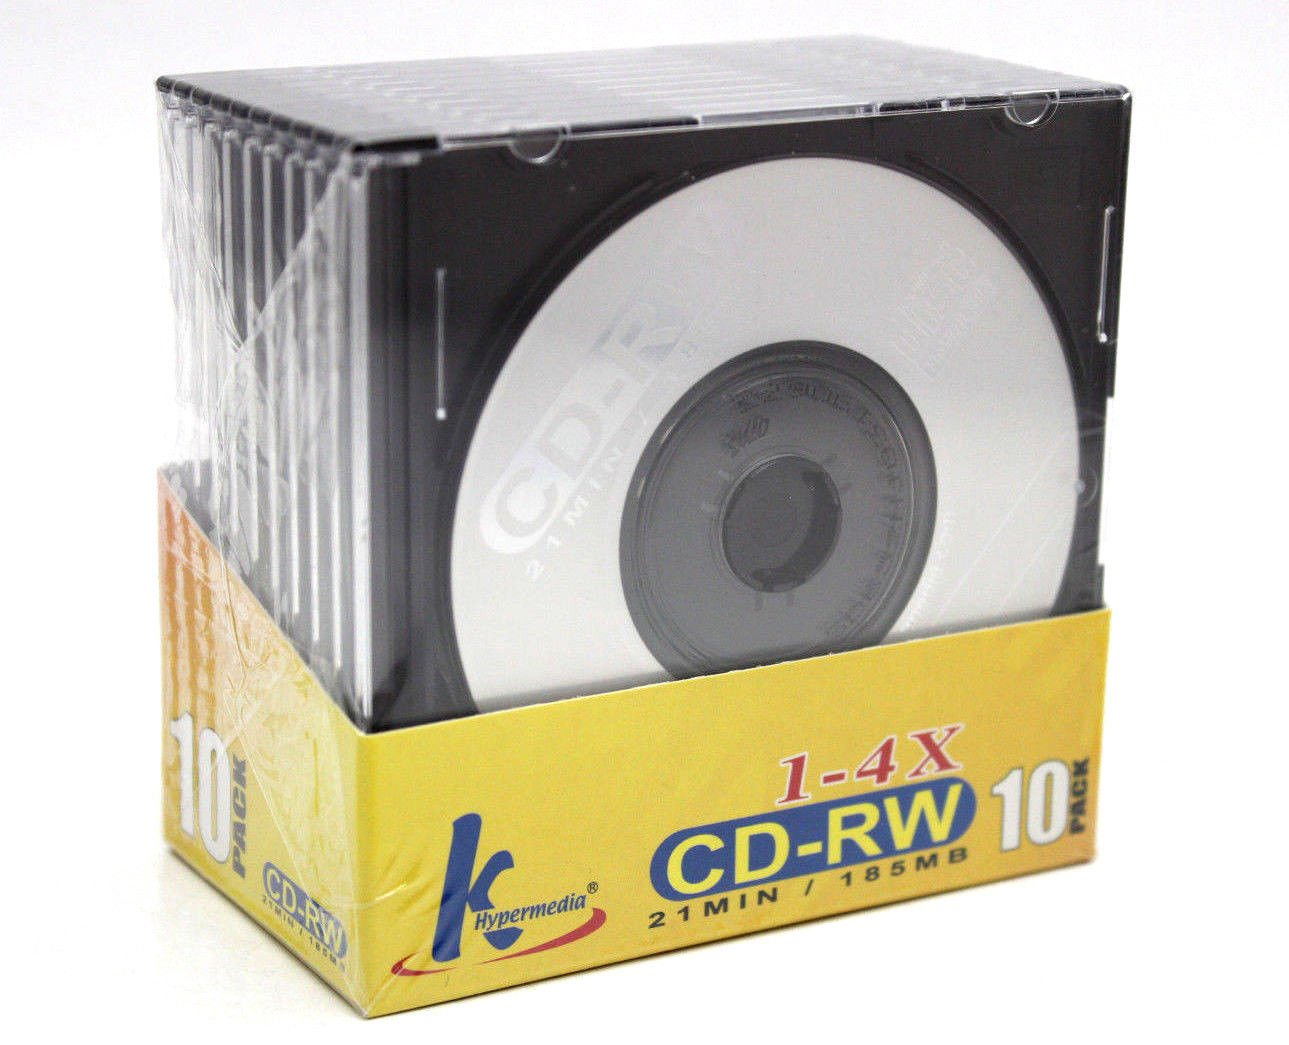 (10-Pack) Mini CD-RW Rewritable 21min 185mb 8cm CDR CD Blank Compact Disc + Jewel Case 717s3Gh2B5sL